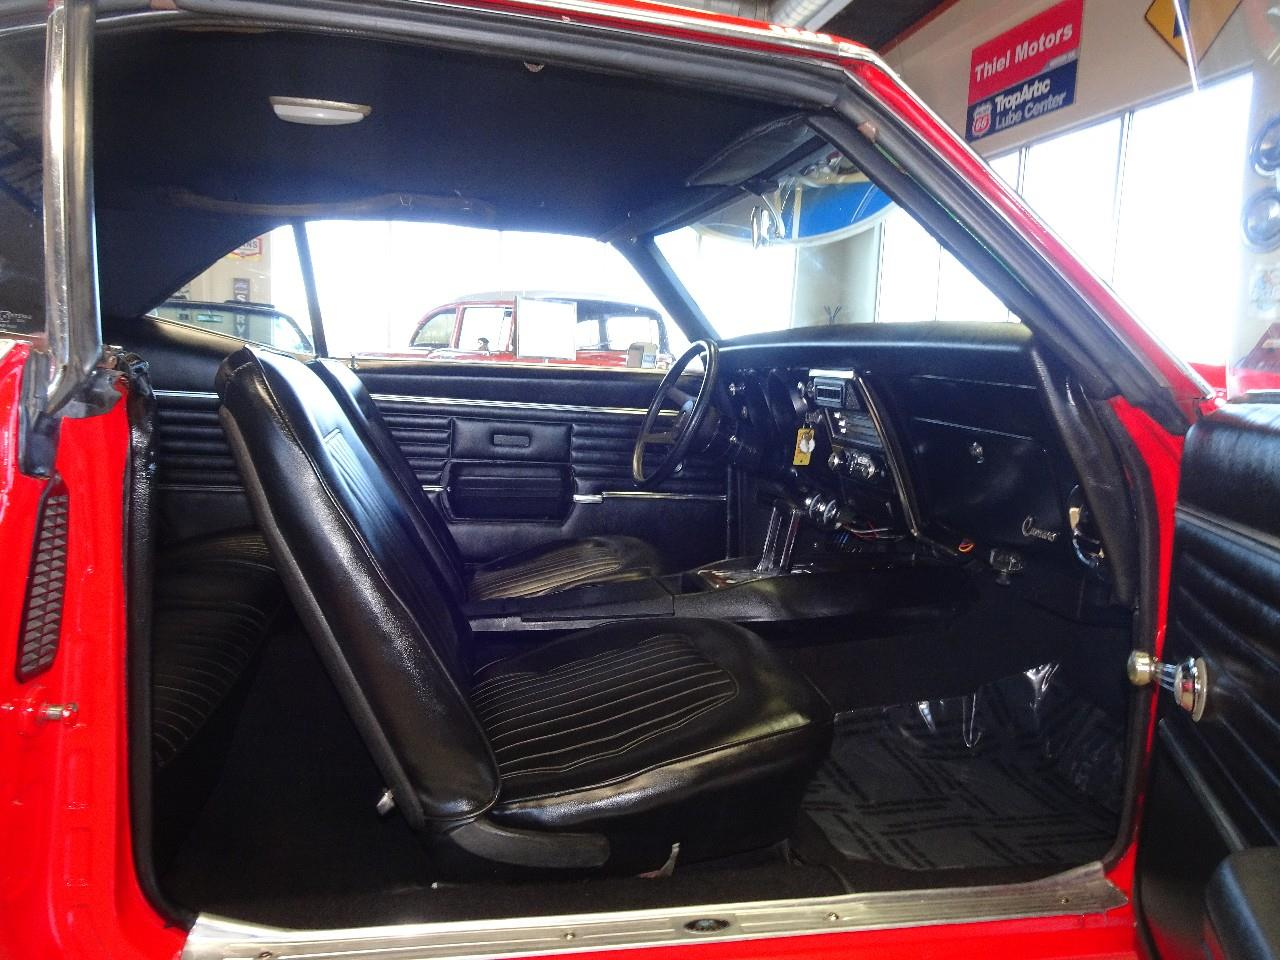 Large Picture of Classic 1968 Camaro SS - $32,997.00 Offered by Thiel Motor Sales Inc. - P3YL